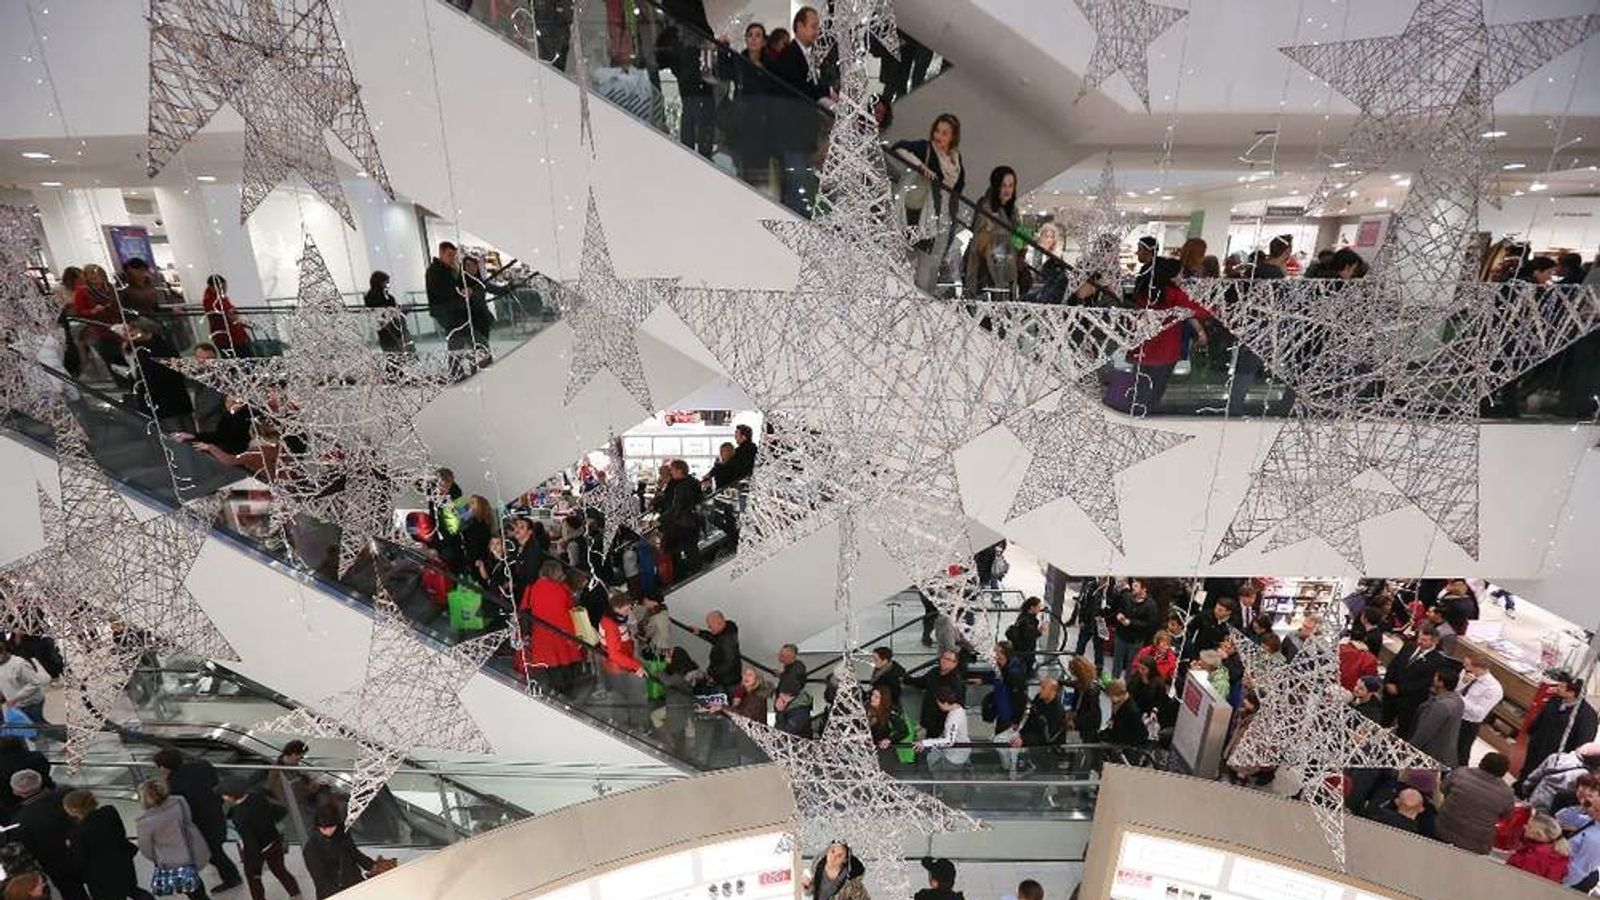 Christmas shoppers in the atrium of John Lewis Oxford Street